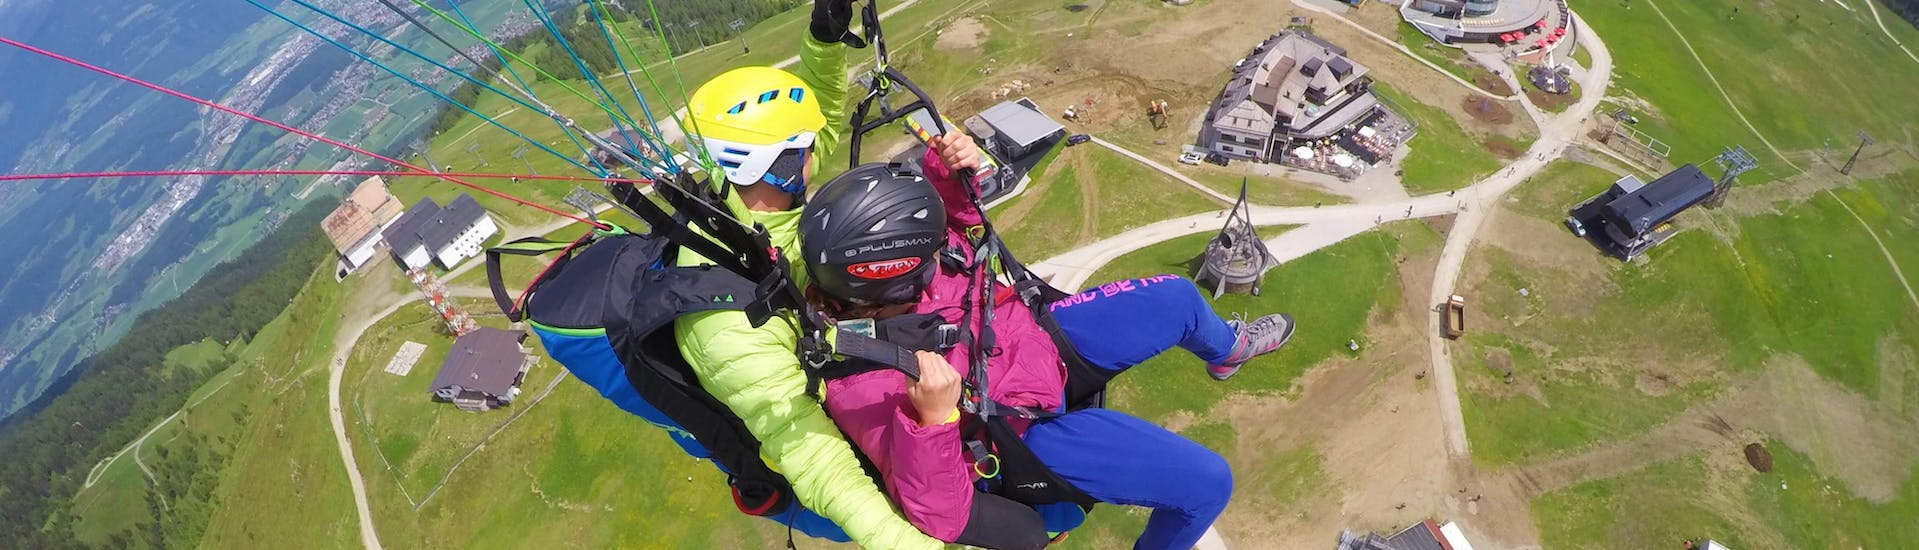 A young woman is gliding over the peak of Plan de Corones with her tandem pilot during the Tandem Paragliding from Plan de Corones with Tandemflights Kronplatz.